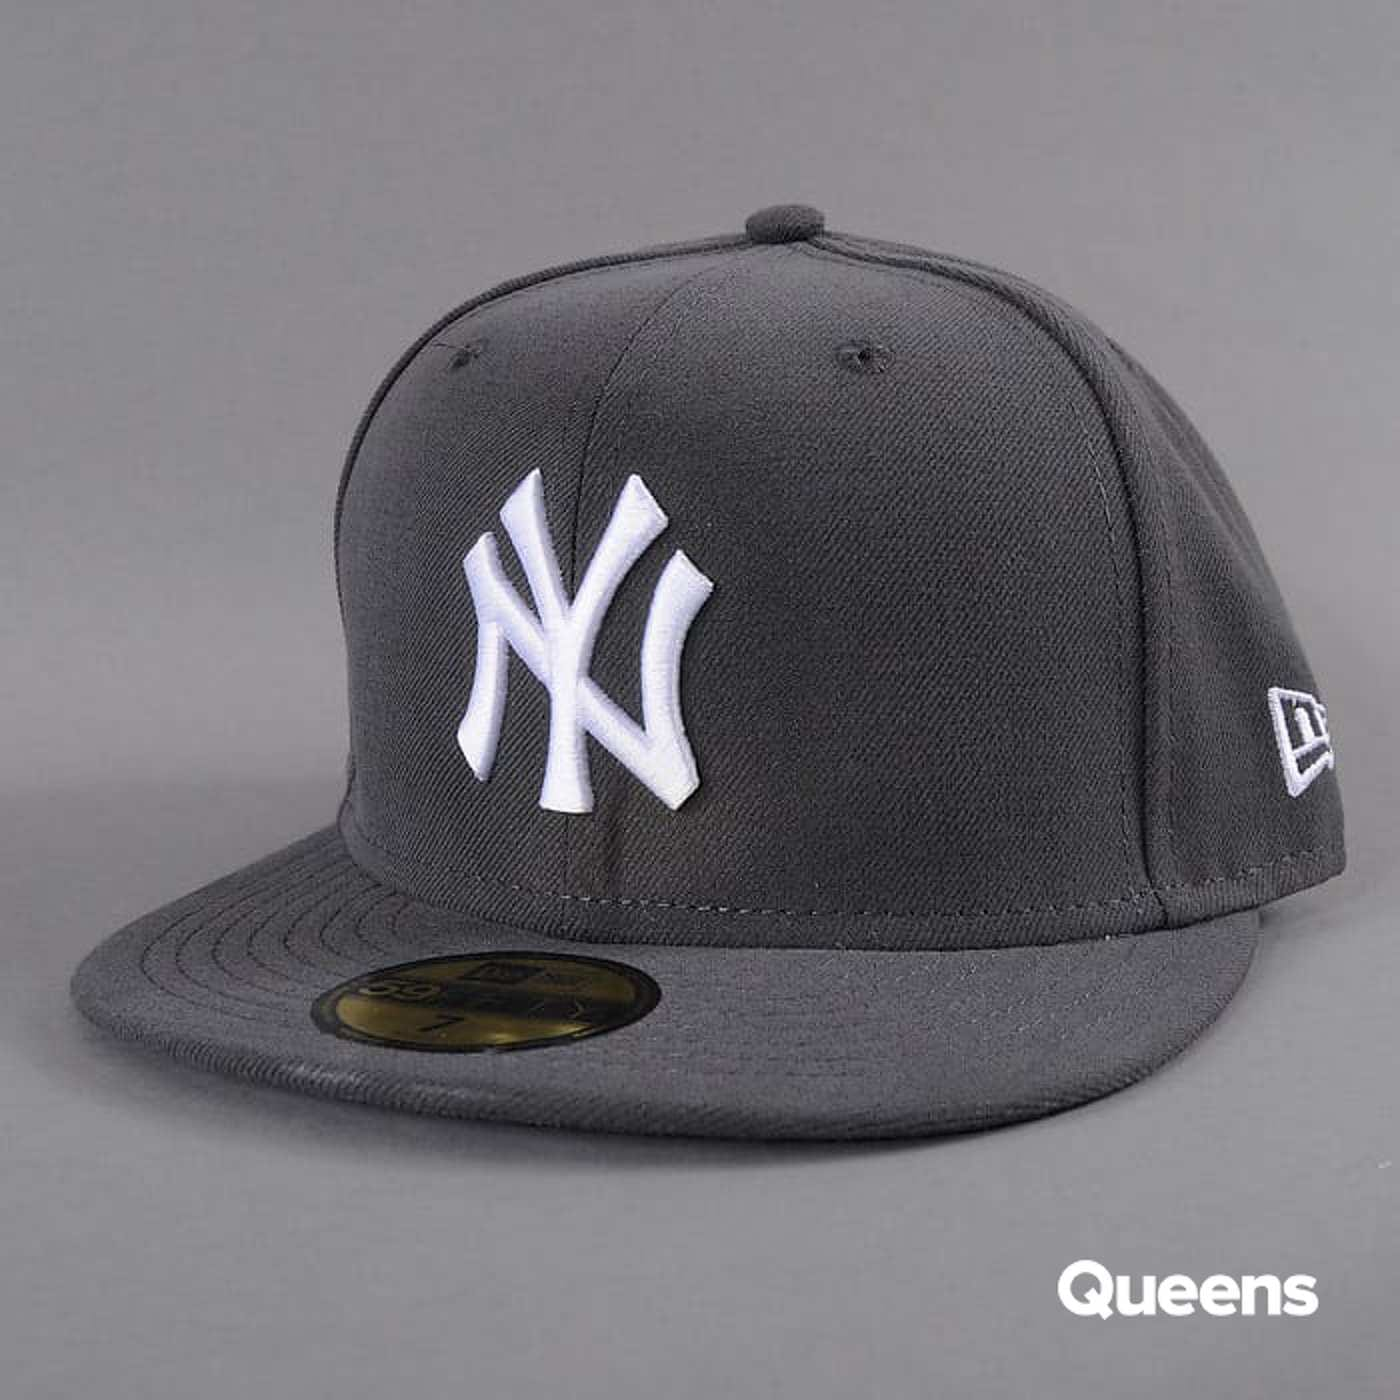 New Era MLB Basic NY dunkelgrau / weiß